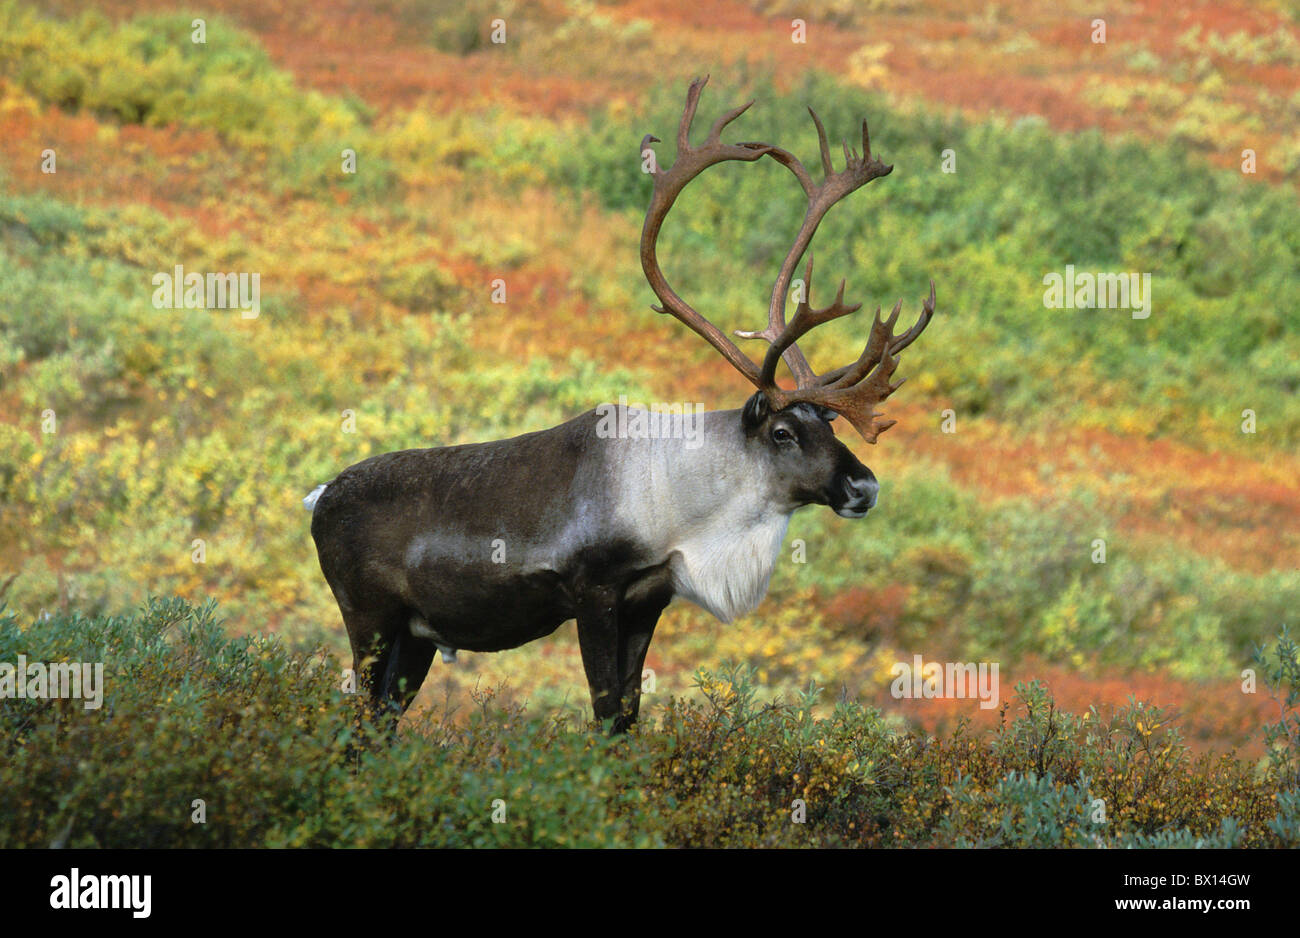 Animals That Live In The Tundra